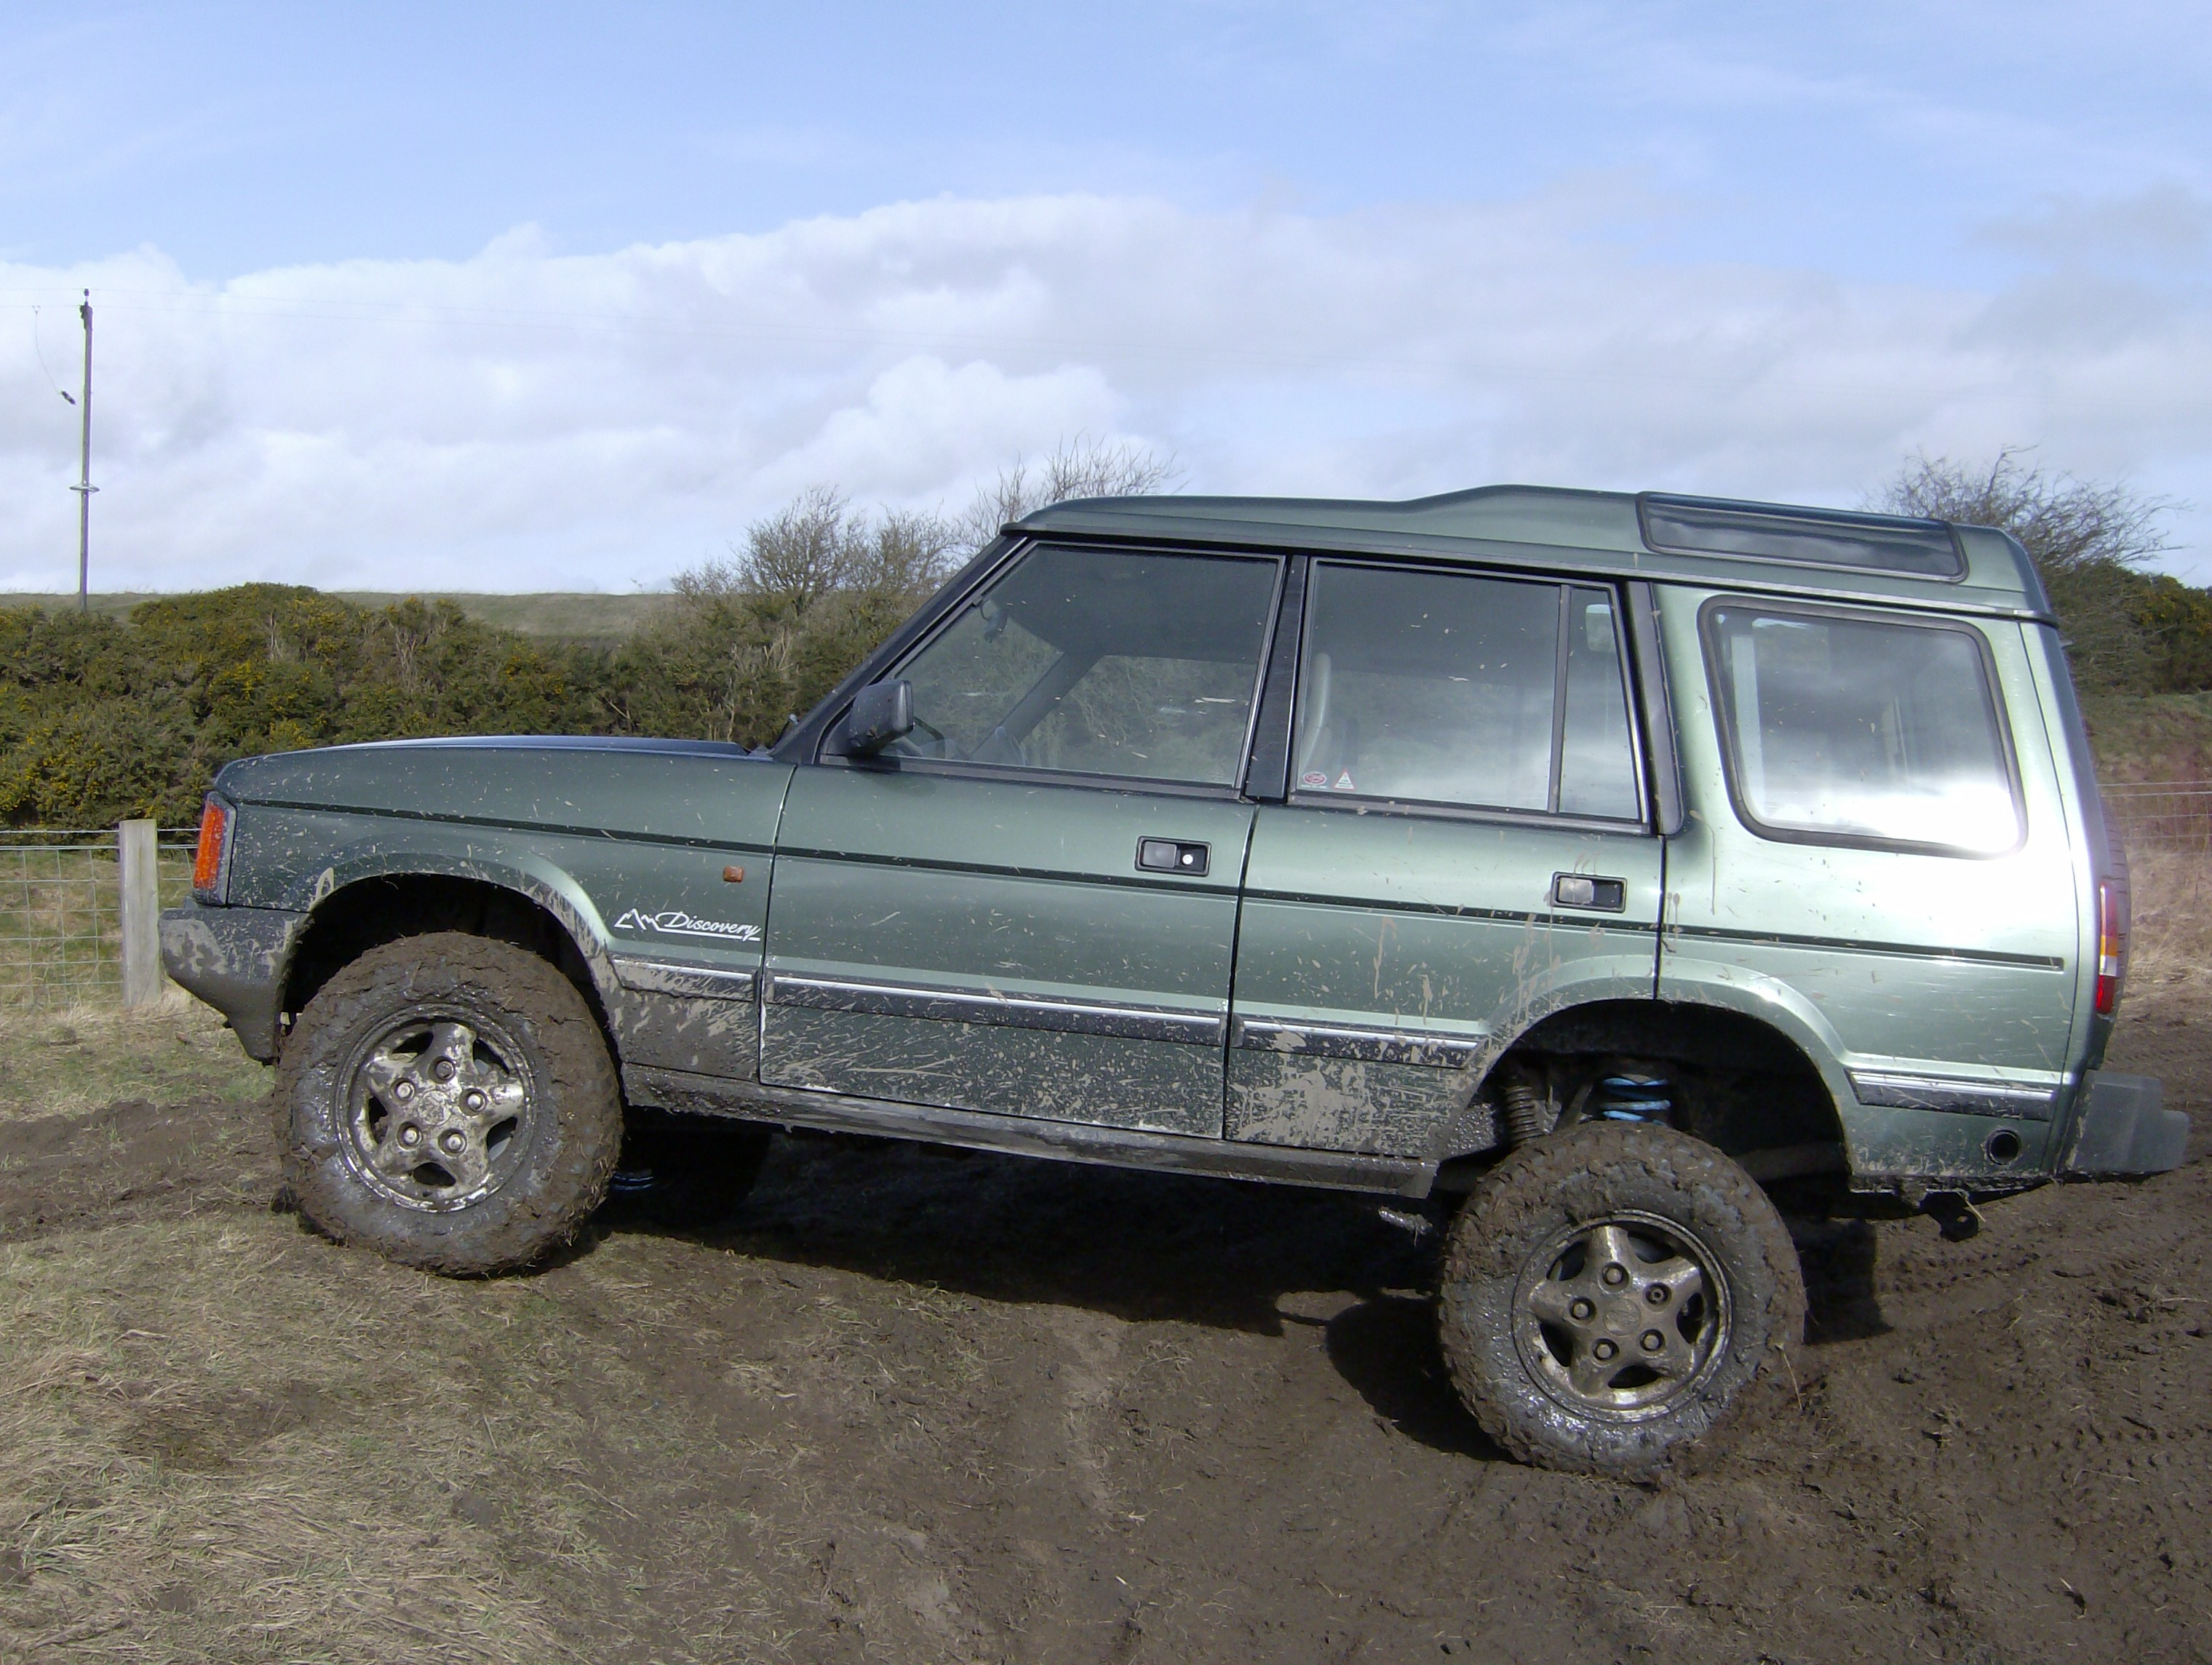 What lift kits are you running Discovery Forum LR4x4 The